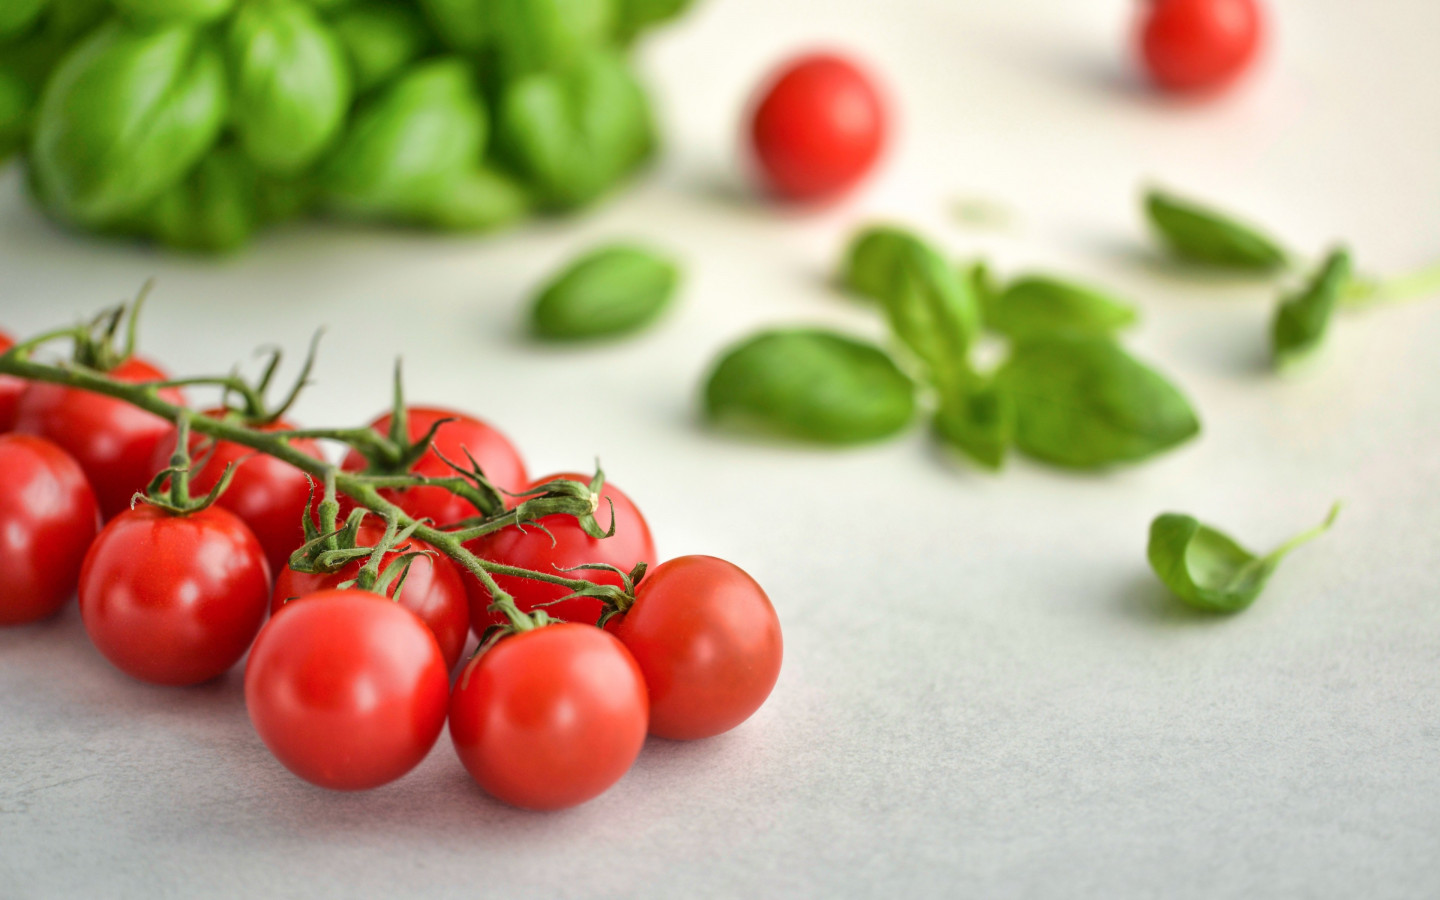 Tomatoes and basil wallpaper 1440x900